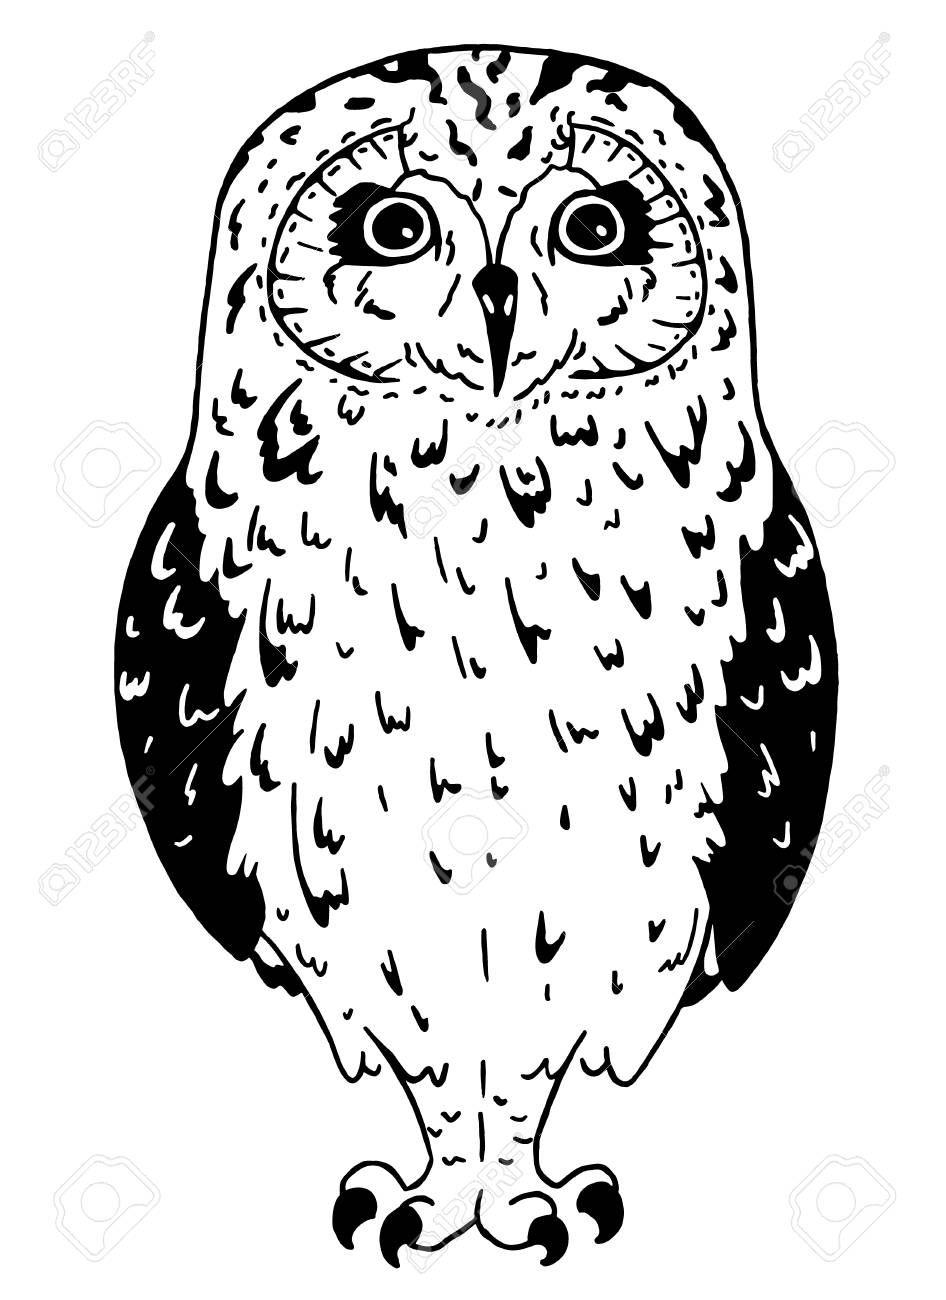 Owl Drawings Black And White Clip Art